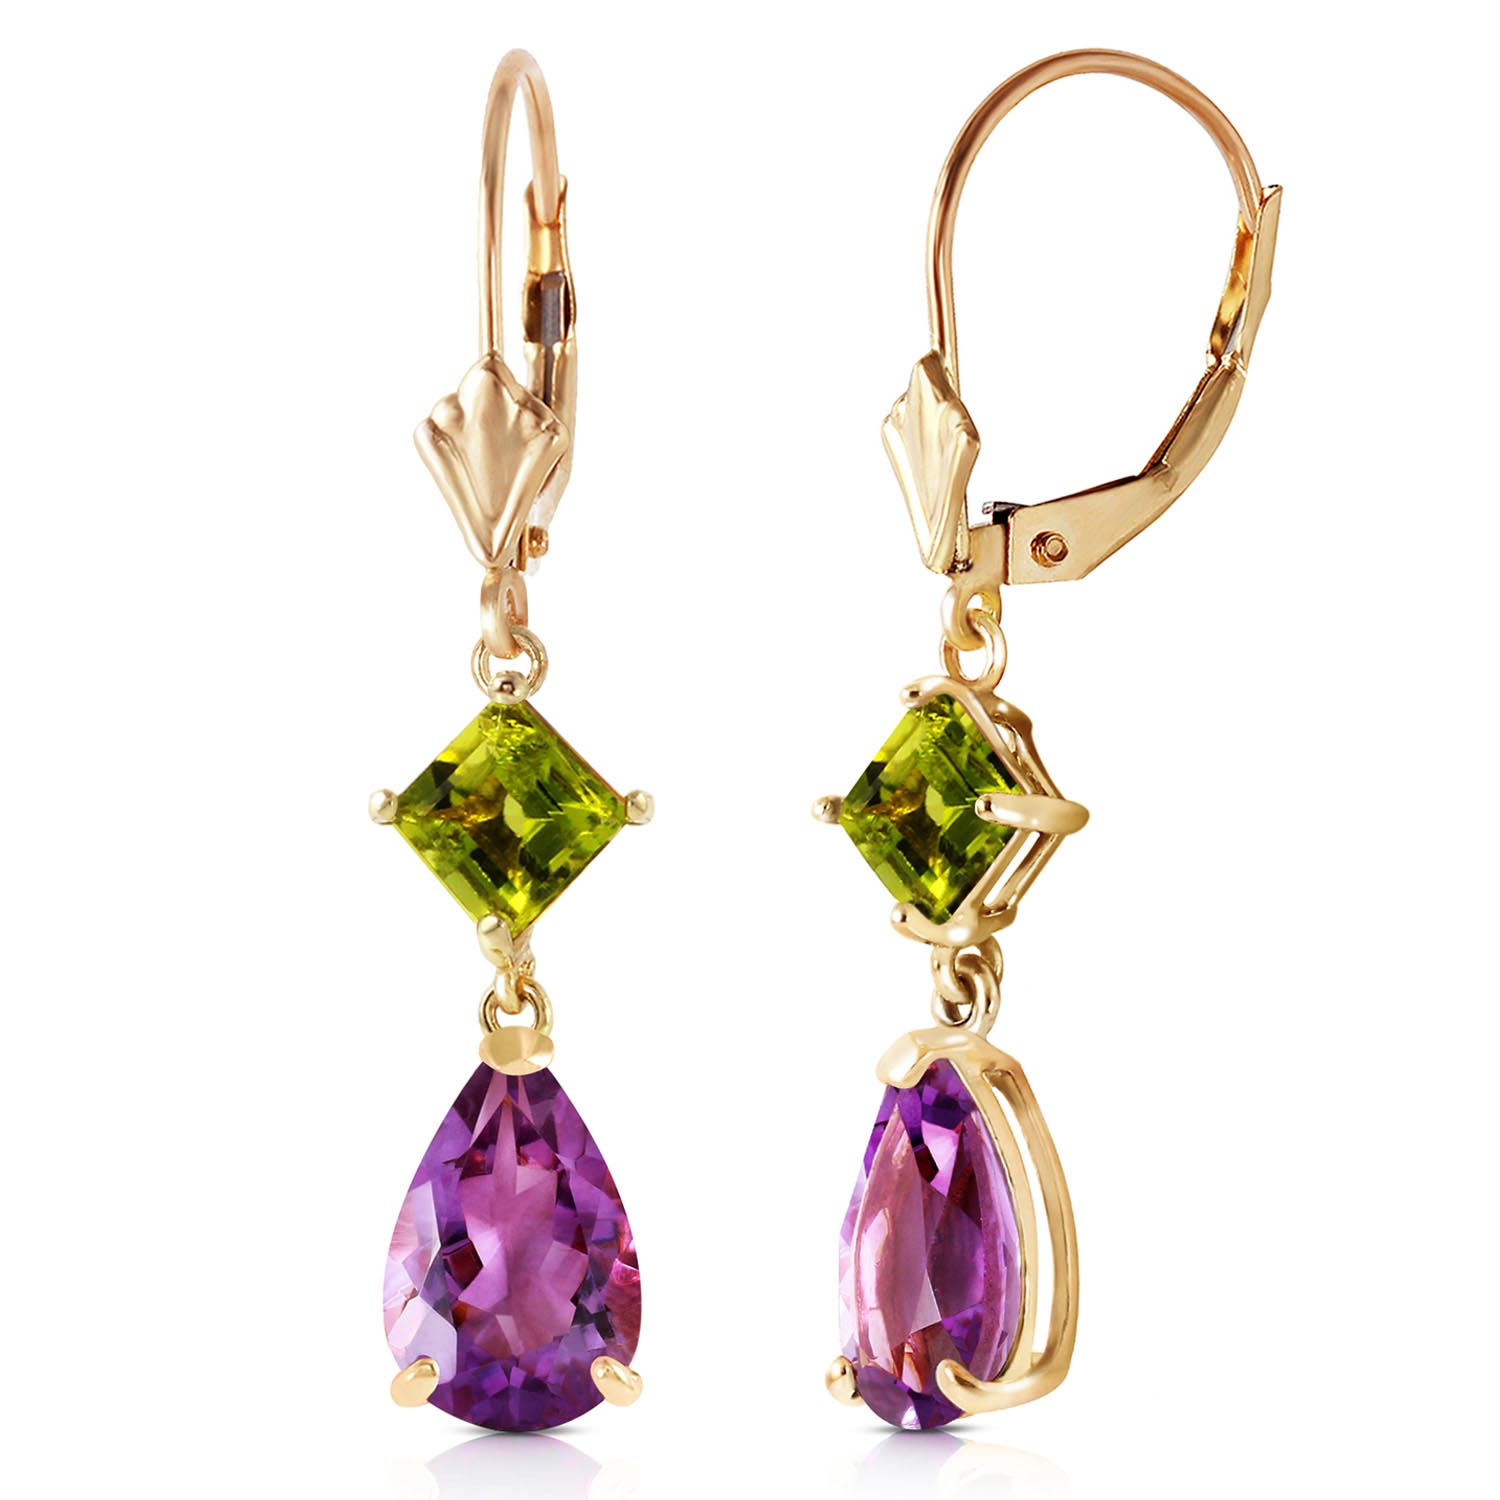 Amethyst and Peridot Droplet Earrings 4.5ctw in 9ct Gold